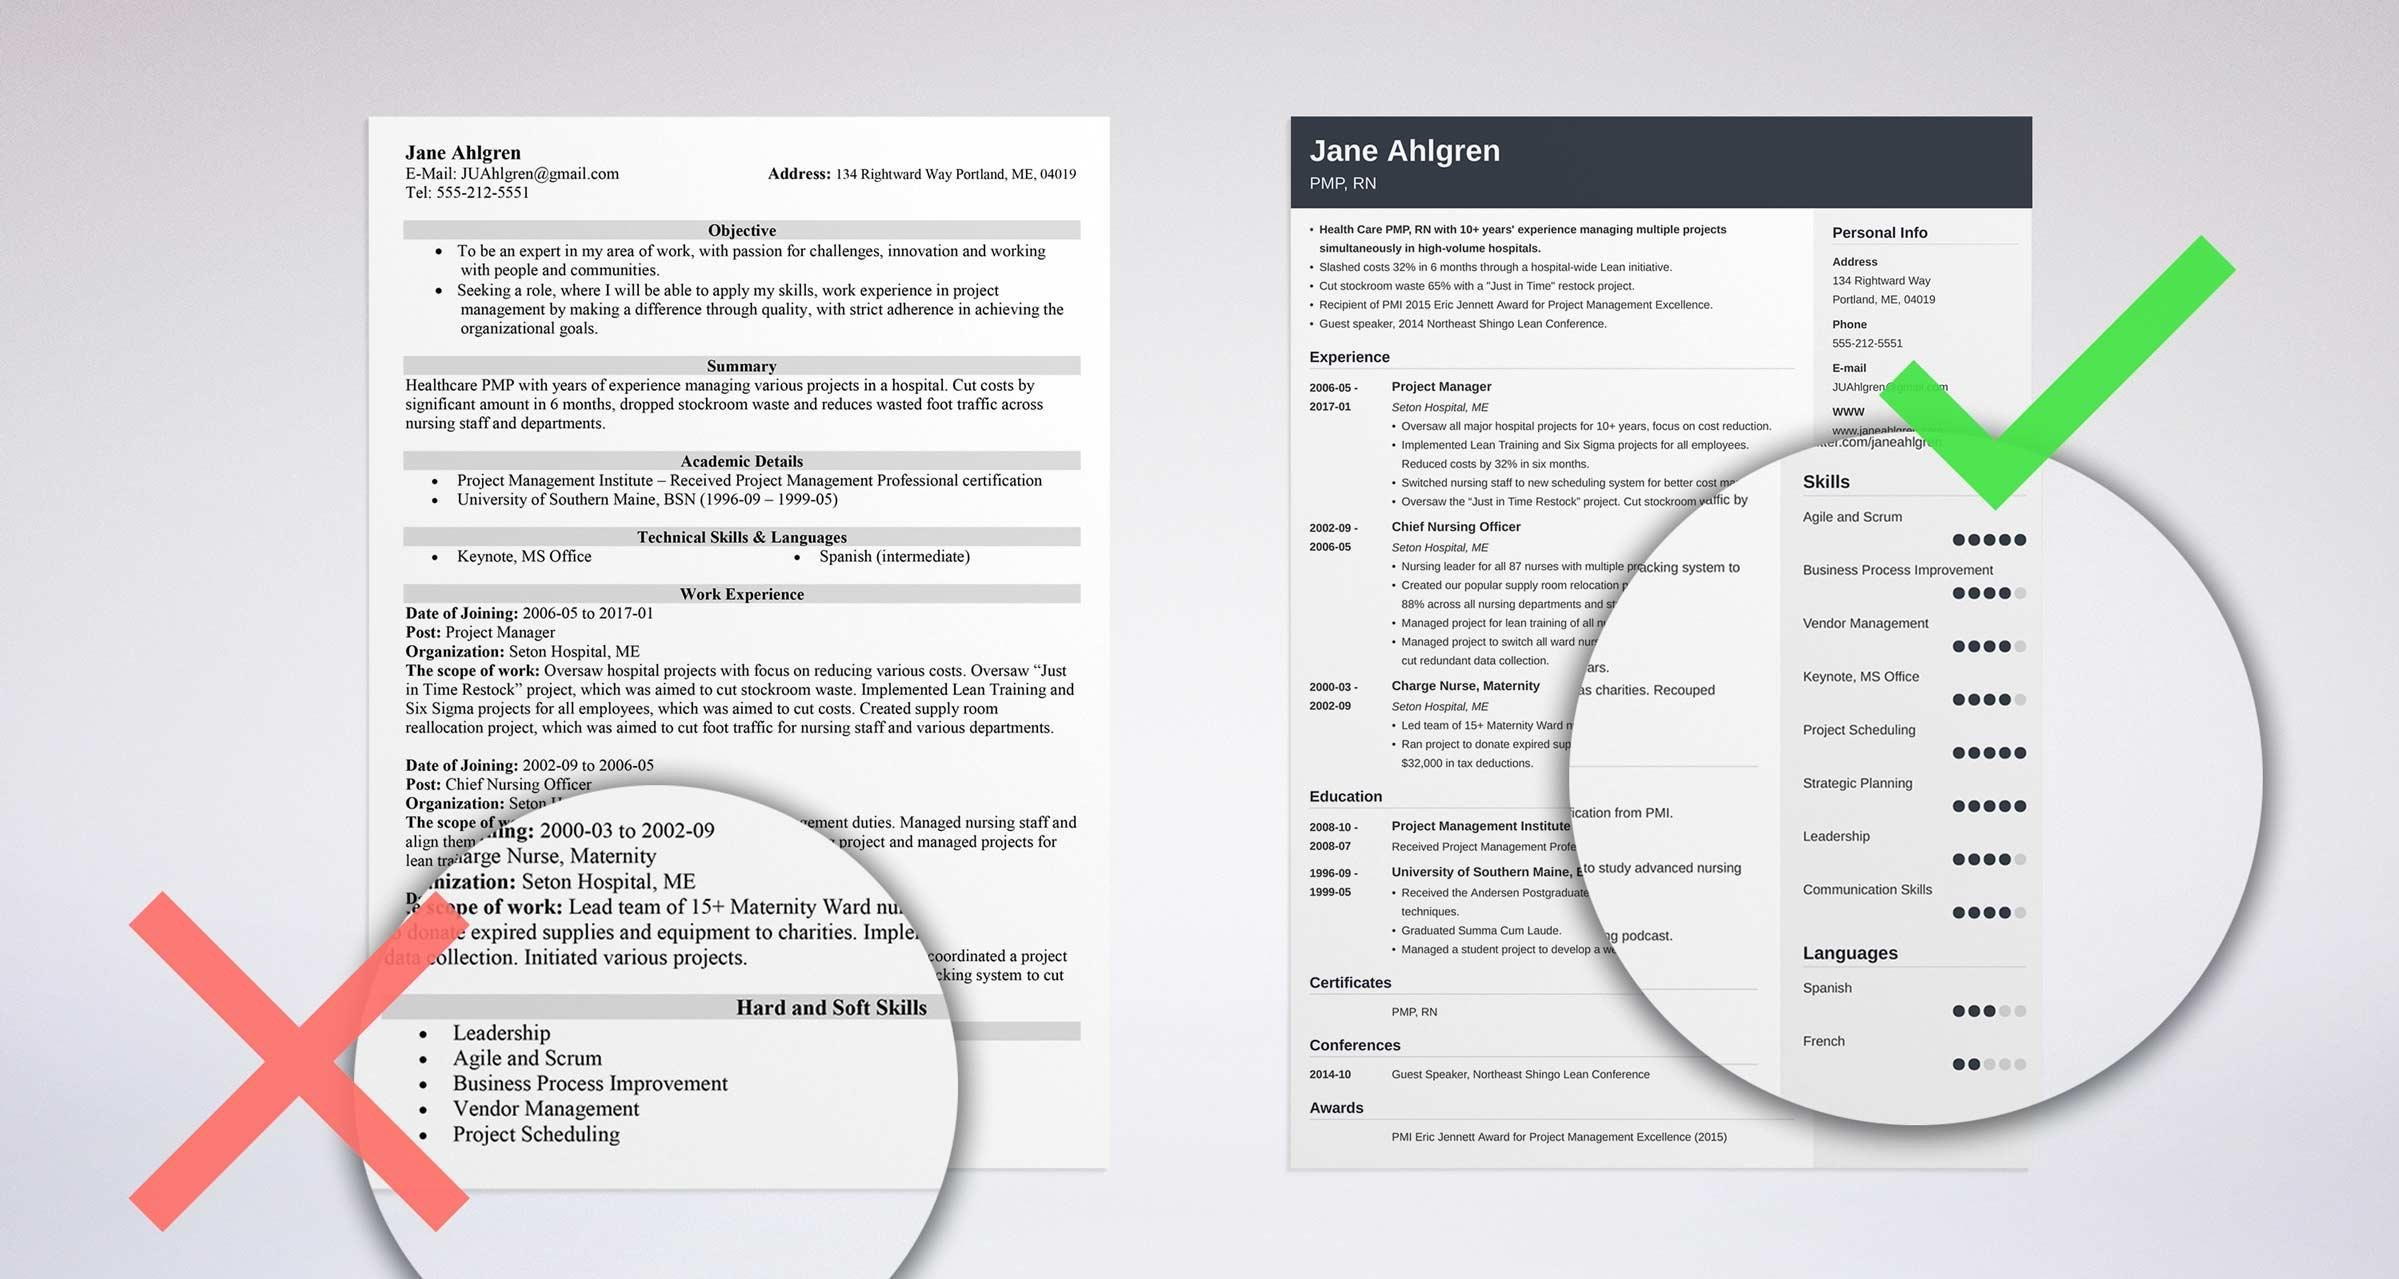 skills for resume best of examples all jobs that are good on resume1 sample fast food Resume Skills That Are Good For A Resume